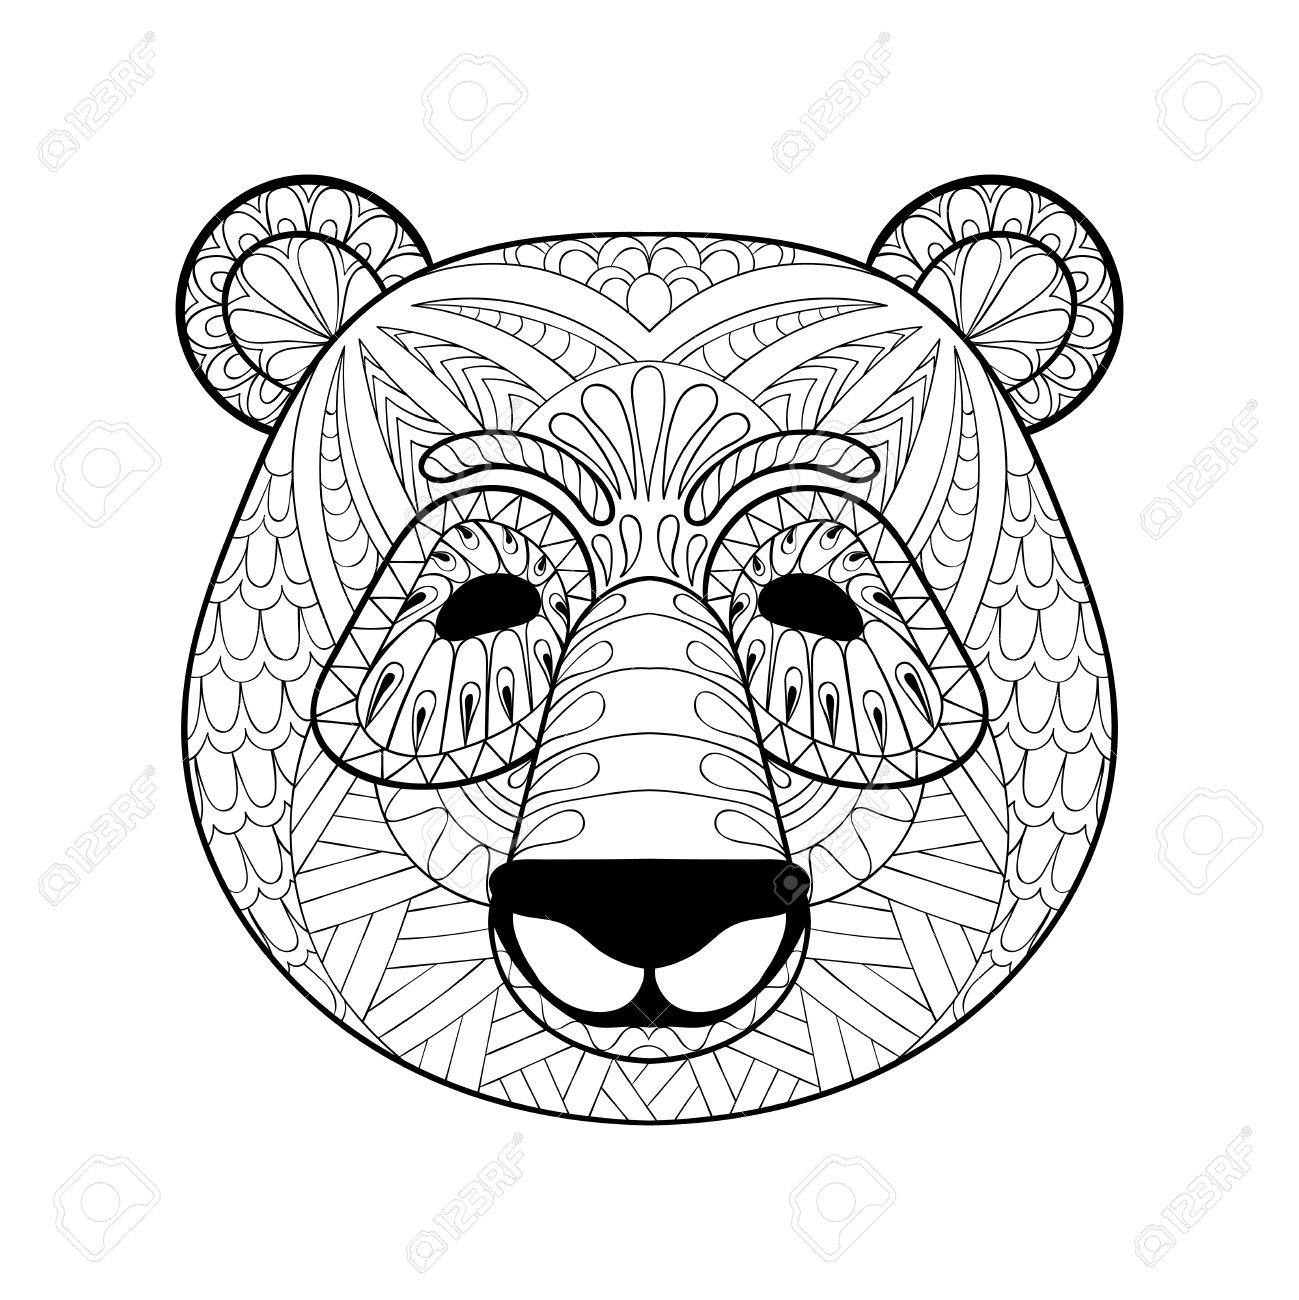 1299x1300 Head Of Panda In Style. Freehand Sketch For Adult Antistress